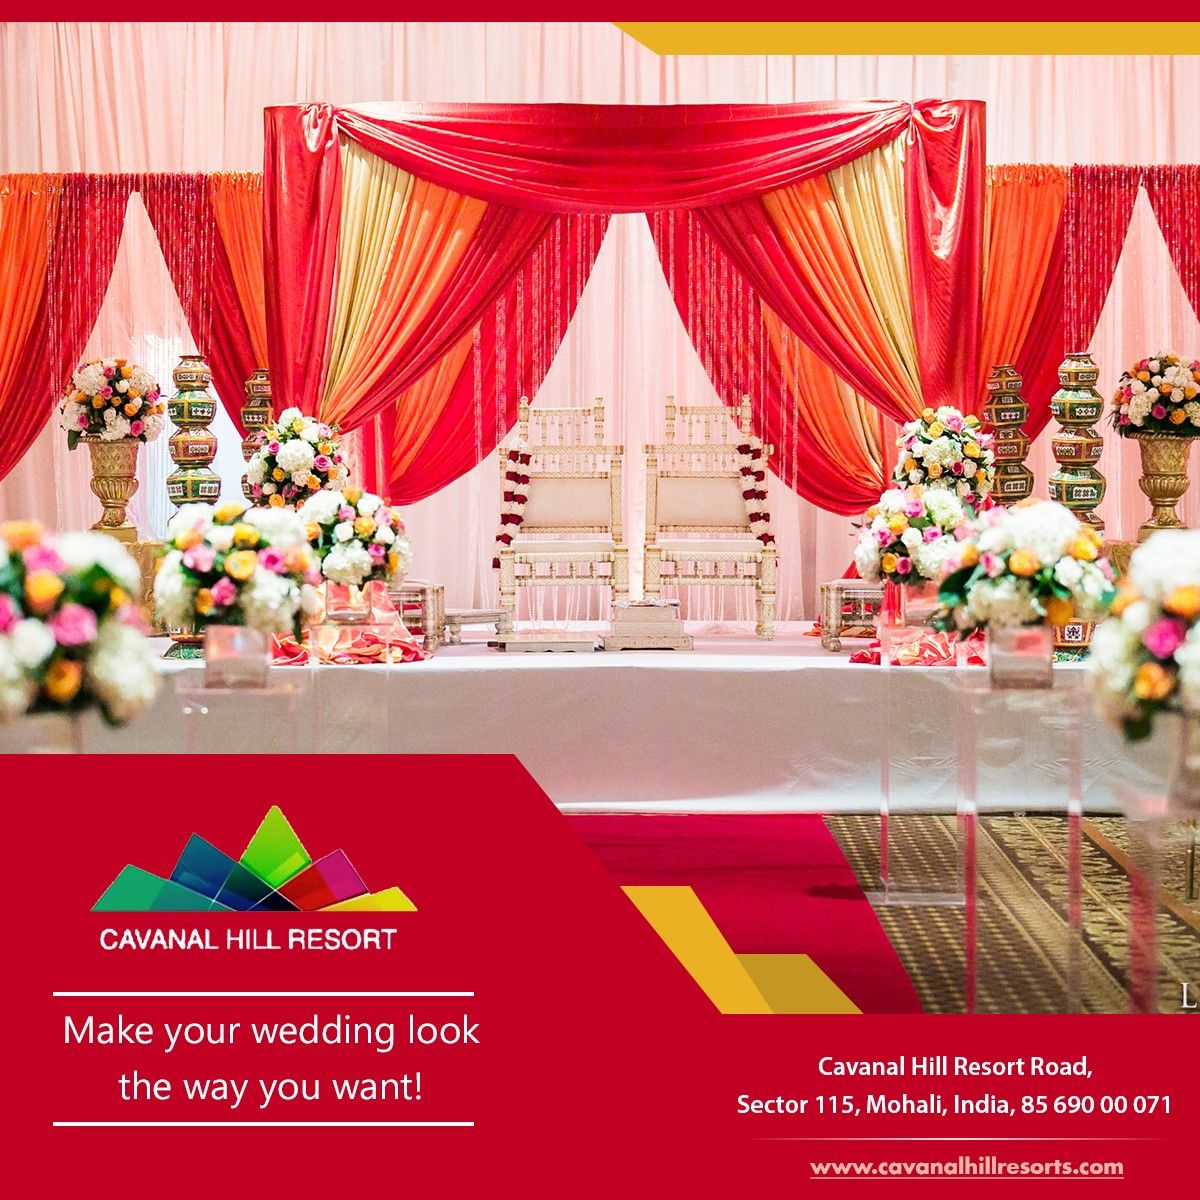 Find the perfect party venue for your wedding For Info, Call +91 ...